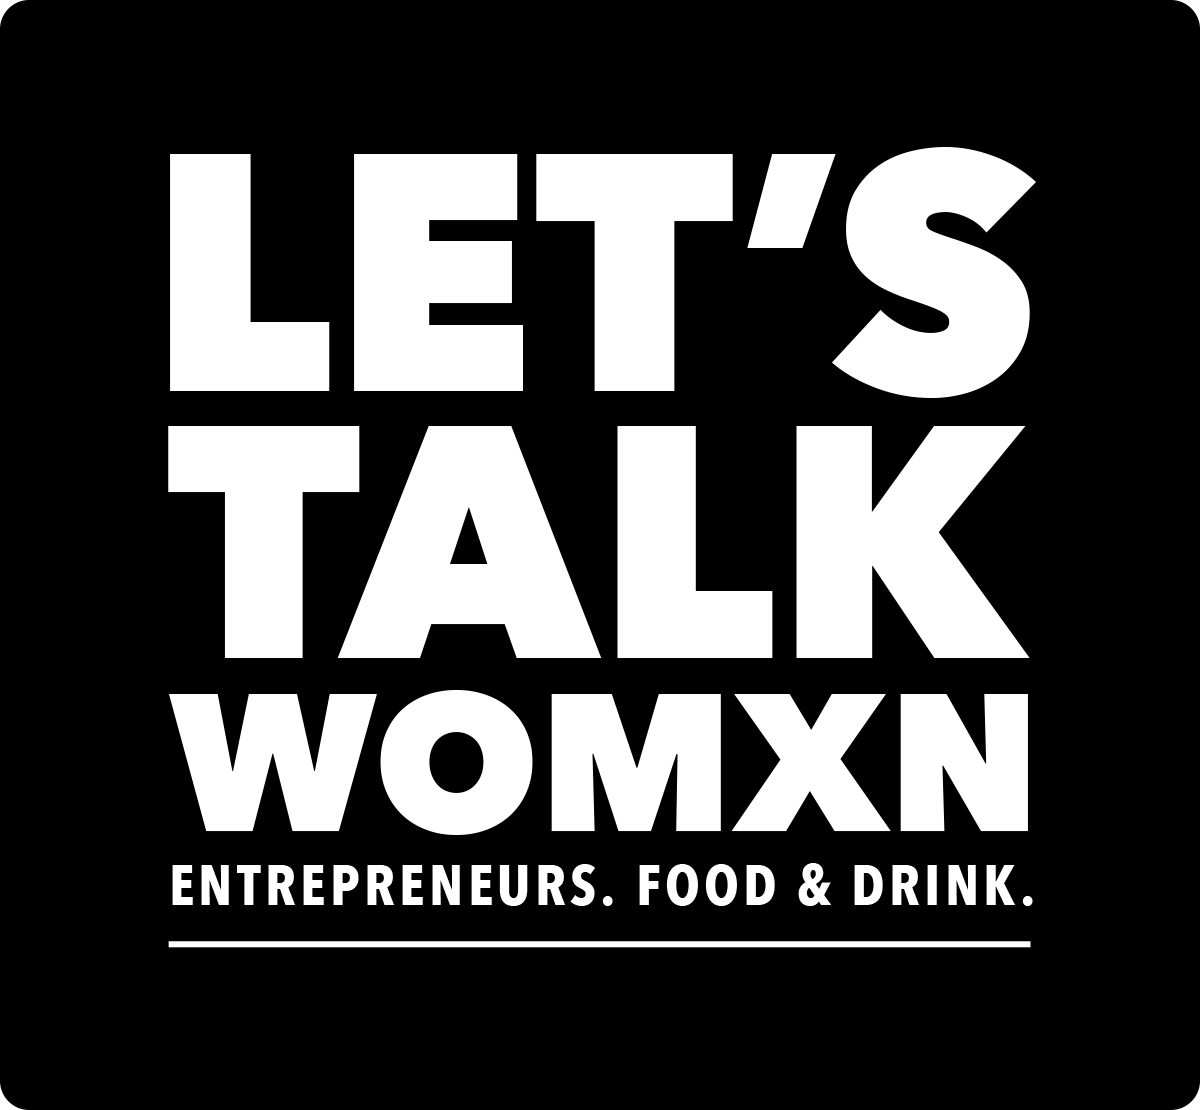 Let's Talk Womxn - Entrepreneurs. Food & Drink.